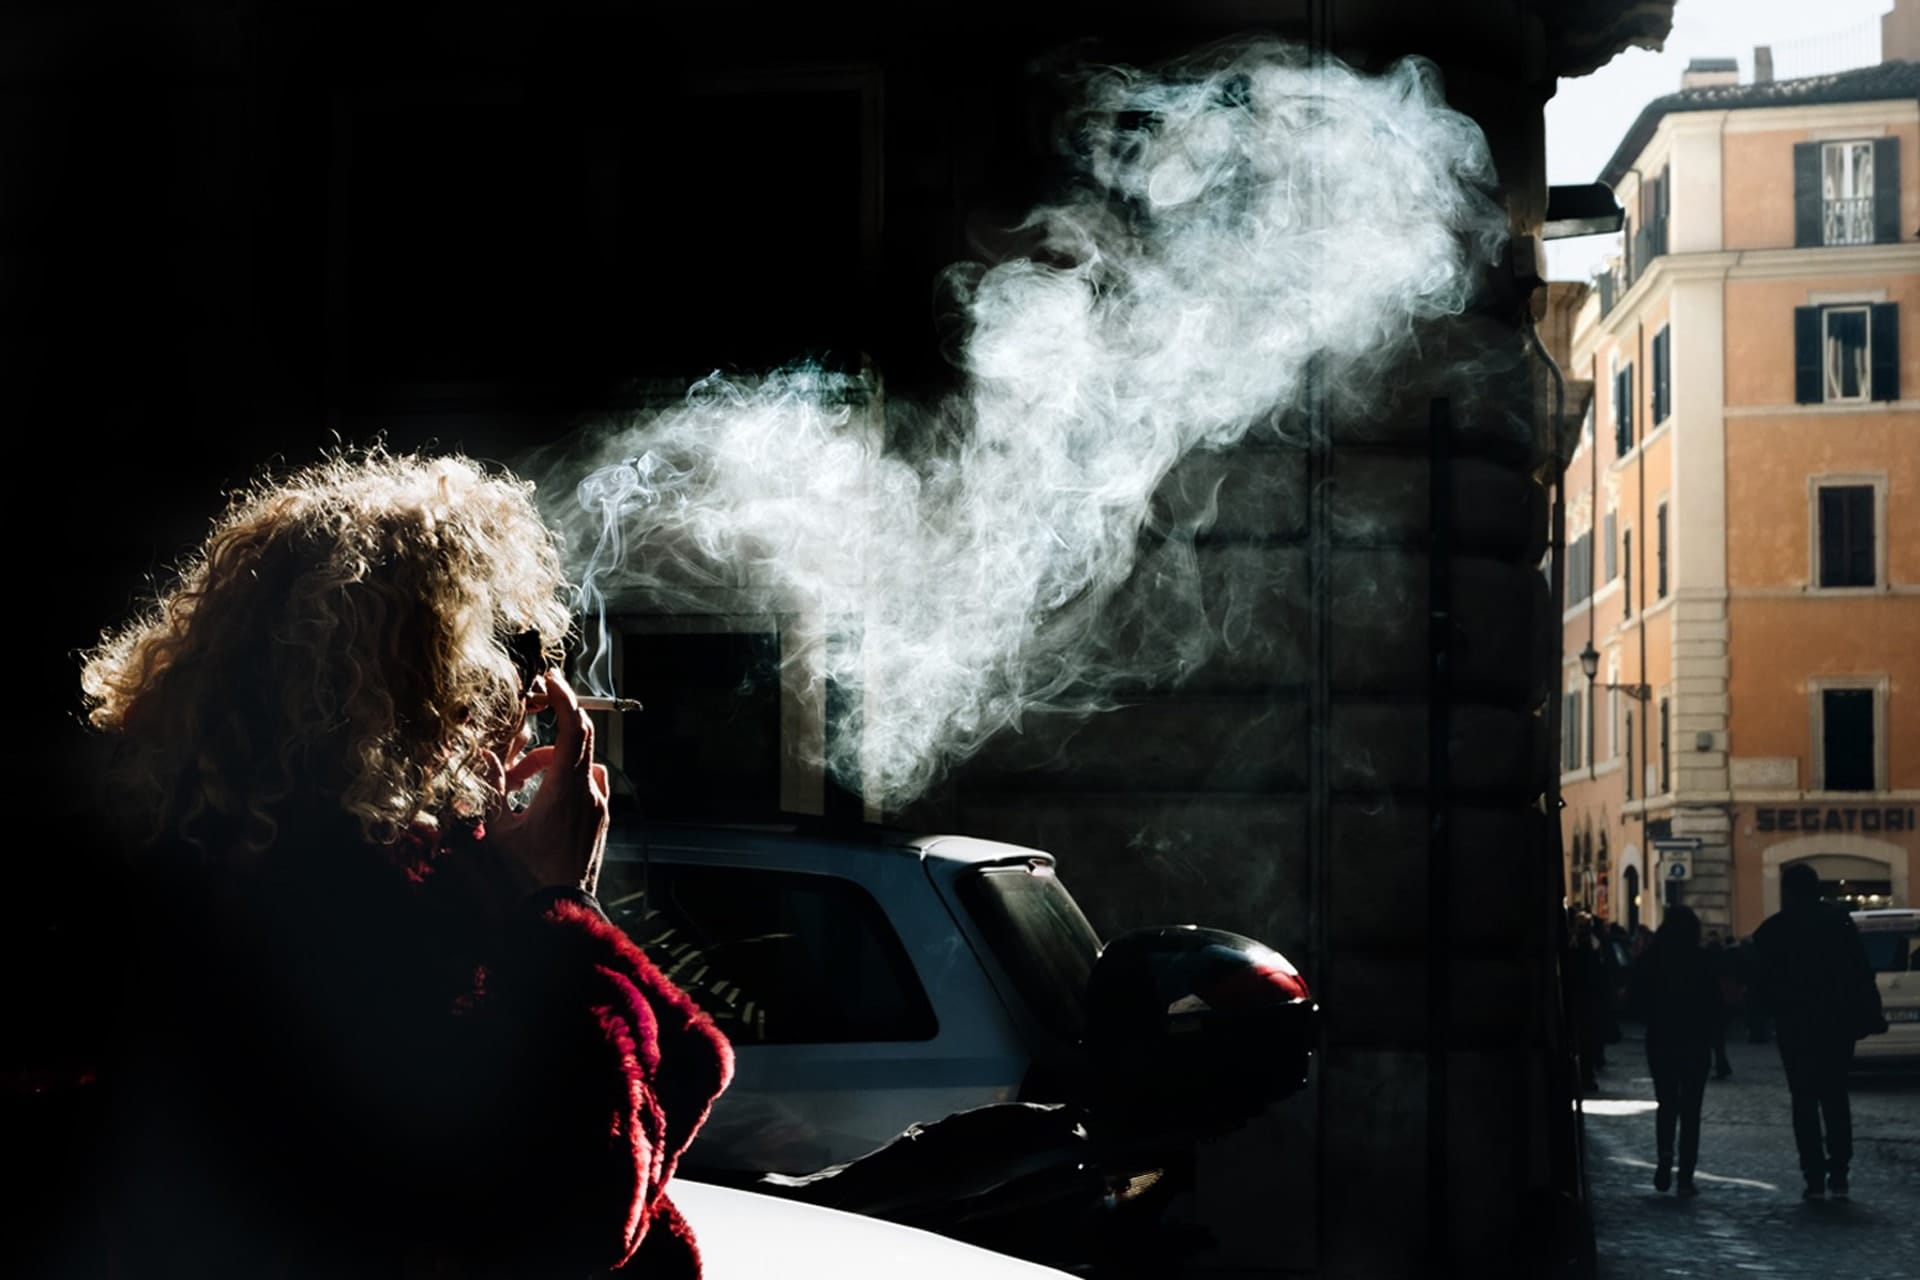 """Smoking"" street photography by Sabrina Corana"